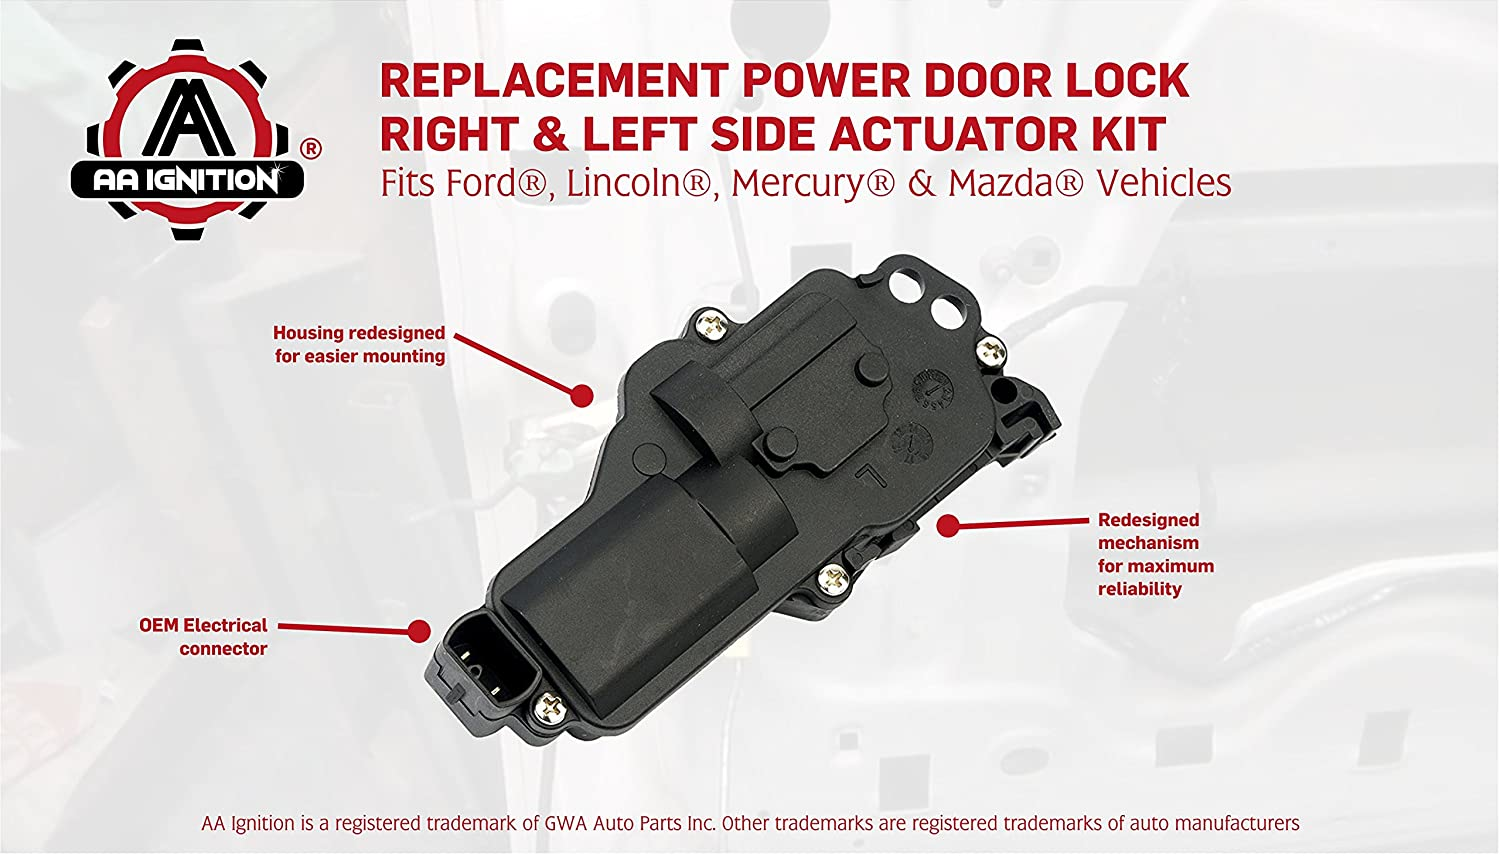 Power Door Lock Actuator Right Left Side Fits Ford 1999 Expedition Keyless Entry Wiring Diagram F150 F250 F350 F450 Excursion Mustang Replaces 6l3z25218a43aa